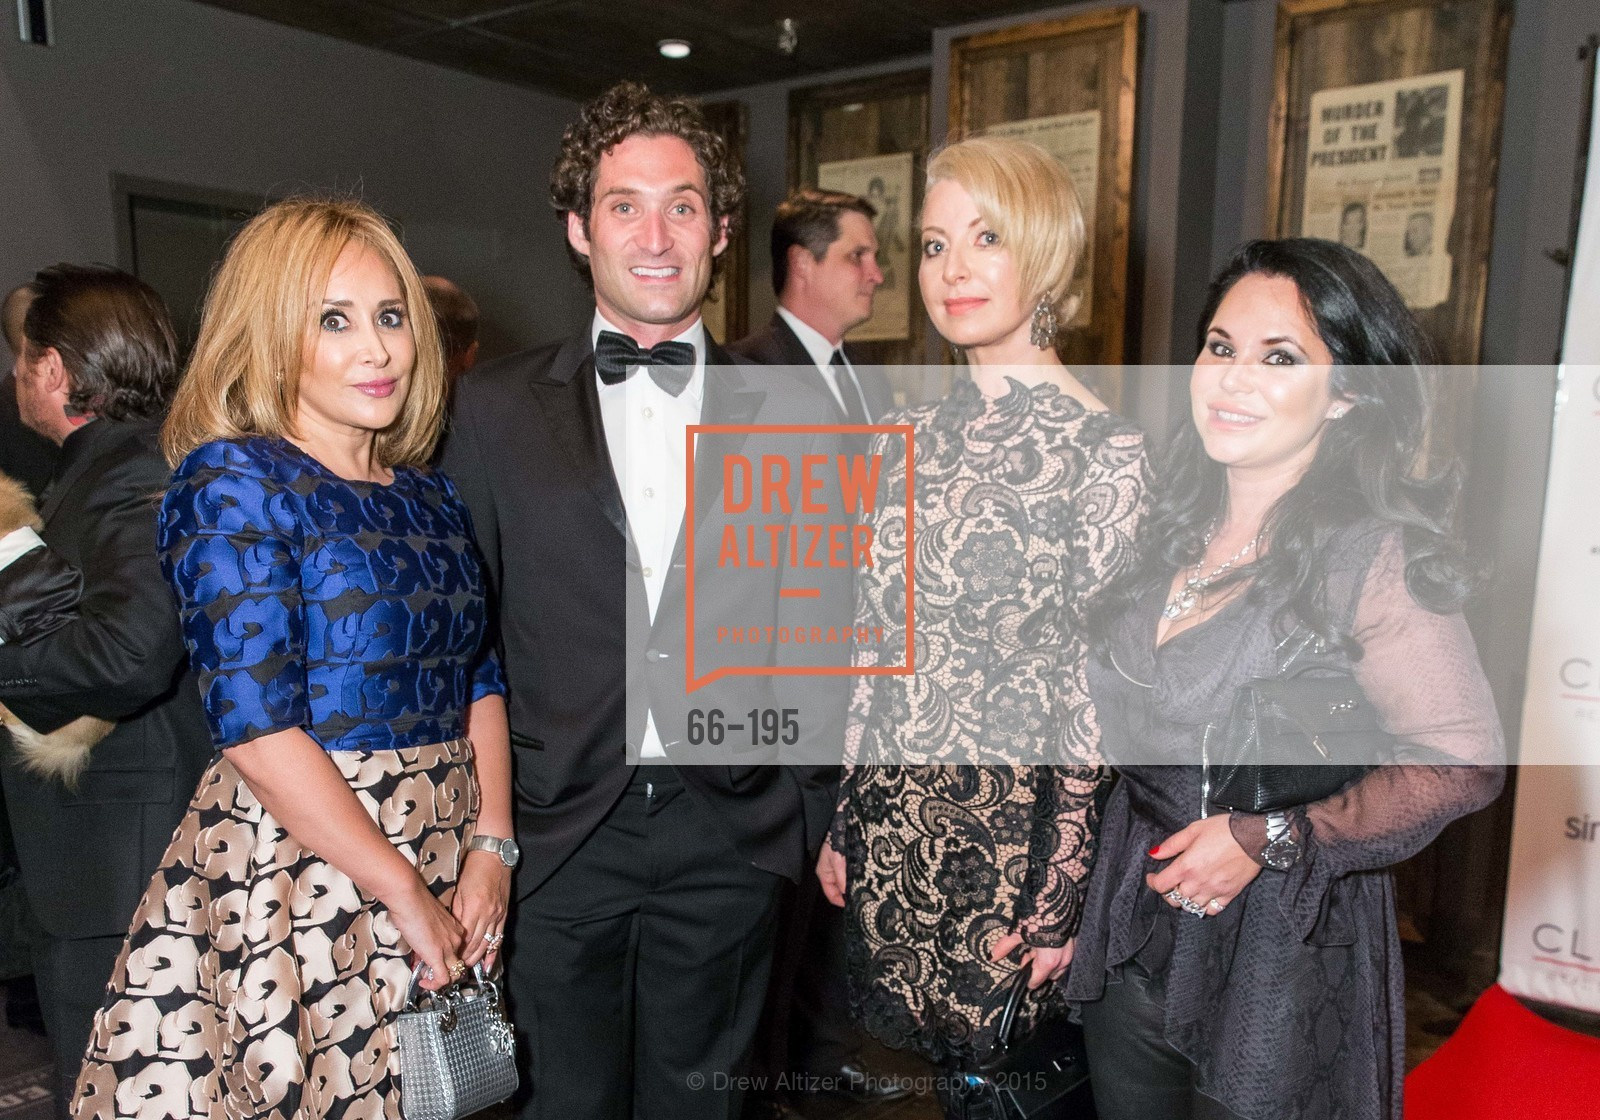 Brenda Zarate, Justin Fichelson, Sonya Molodetskaya, Rada Katz, Climb Real Estate and Sindeo Celebrate the Launch of Million Dollar Listing San Francisco, Local Edition San Francisco. 691 Market St, July 8th, 2015,Drew Altizer, Drew Altizer Photography, full-service agency, private events, San Francisco photographer, photographer california